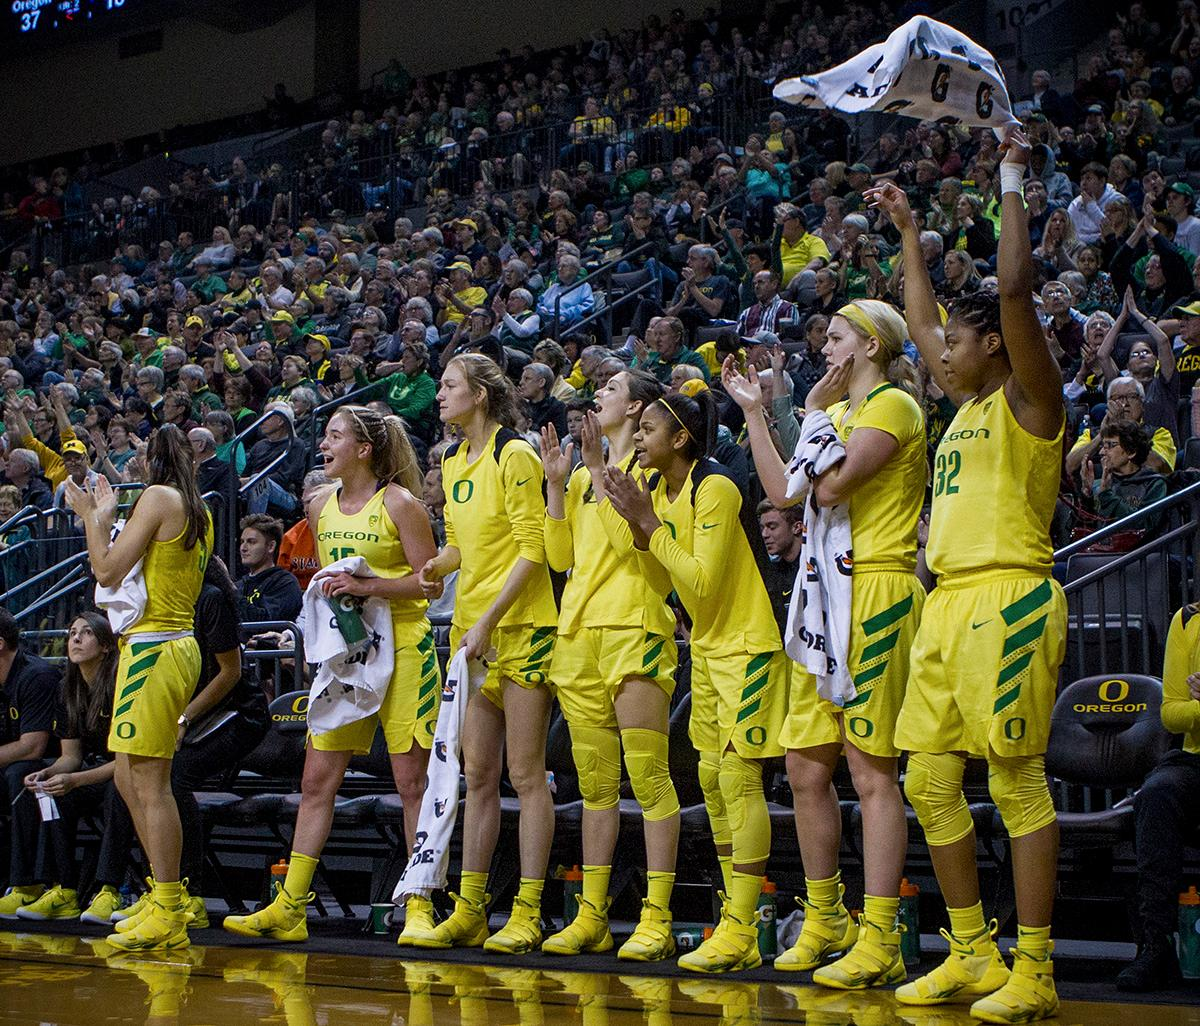 Oregon Ducks team mates cheer from the bench during the second half of their game against the Washington Huskies on Sunday evening. The Oregon Ducks defeated the Washington Huskies 94-83 on Sunday at Matthew Knight Arena. The victory was Head Coach Kelly Graves' 500th career win. Sabrina Ionescu also set the new NCAA all time record of 8 triple doubles in just 48 games. The previous record was 7 triple doubles in 124 games, held by Susie McConnell at Penn State. The Ducks will next face off against USC on Friday January 5th in Los Angeles. Photo by Rhianna Gelhart, Oregon News Lab